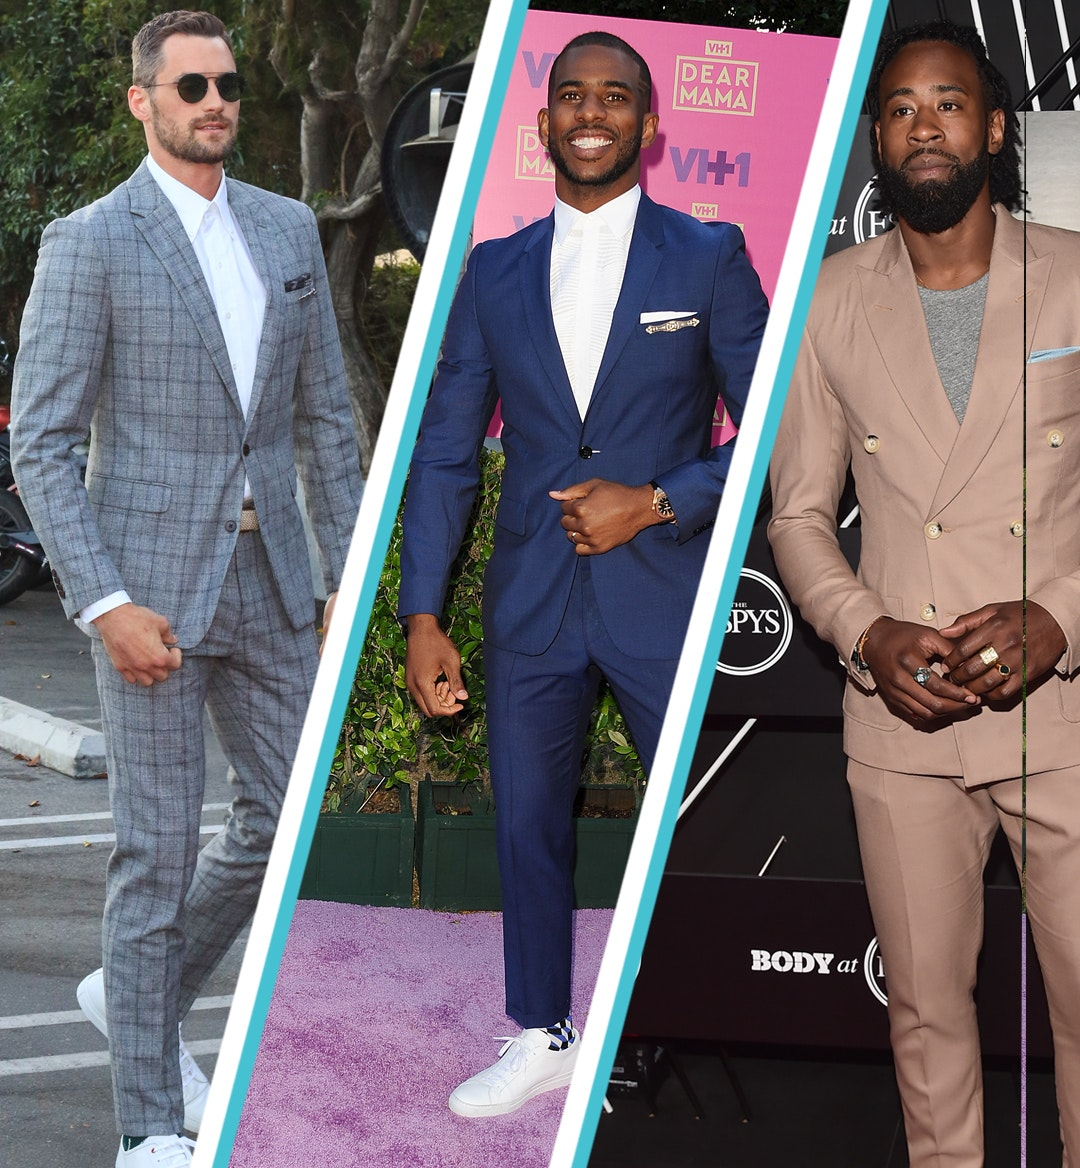 NBA style suits mobile